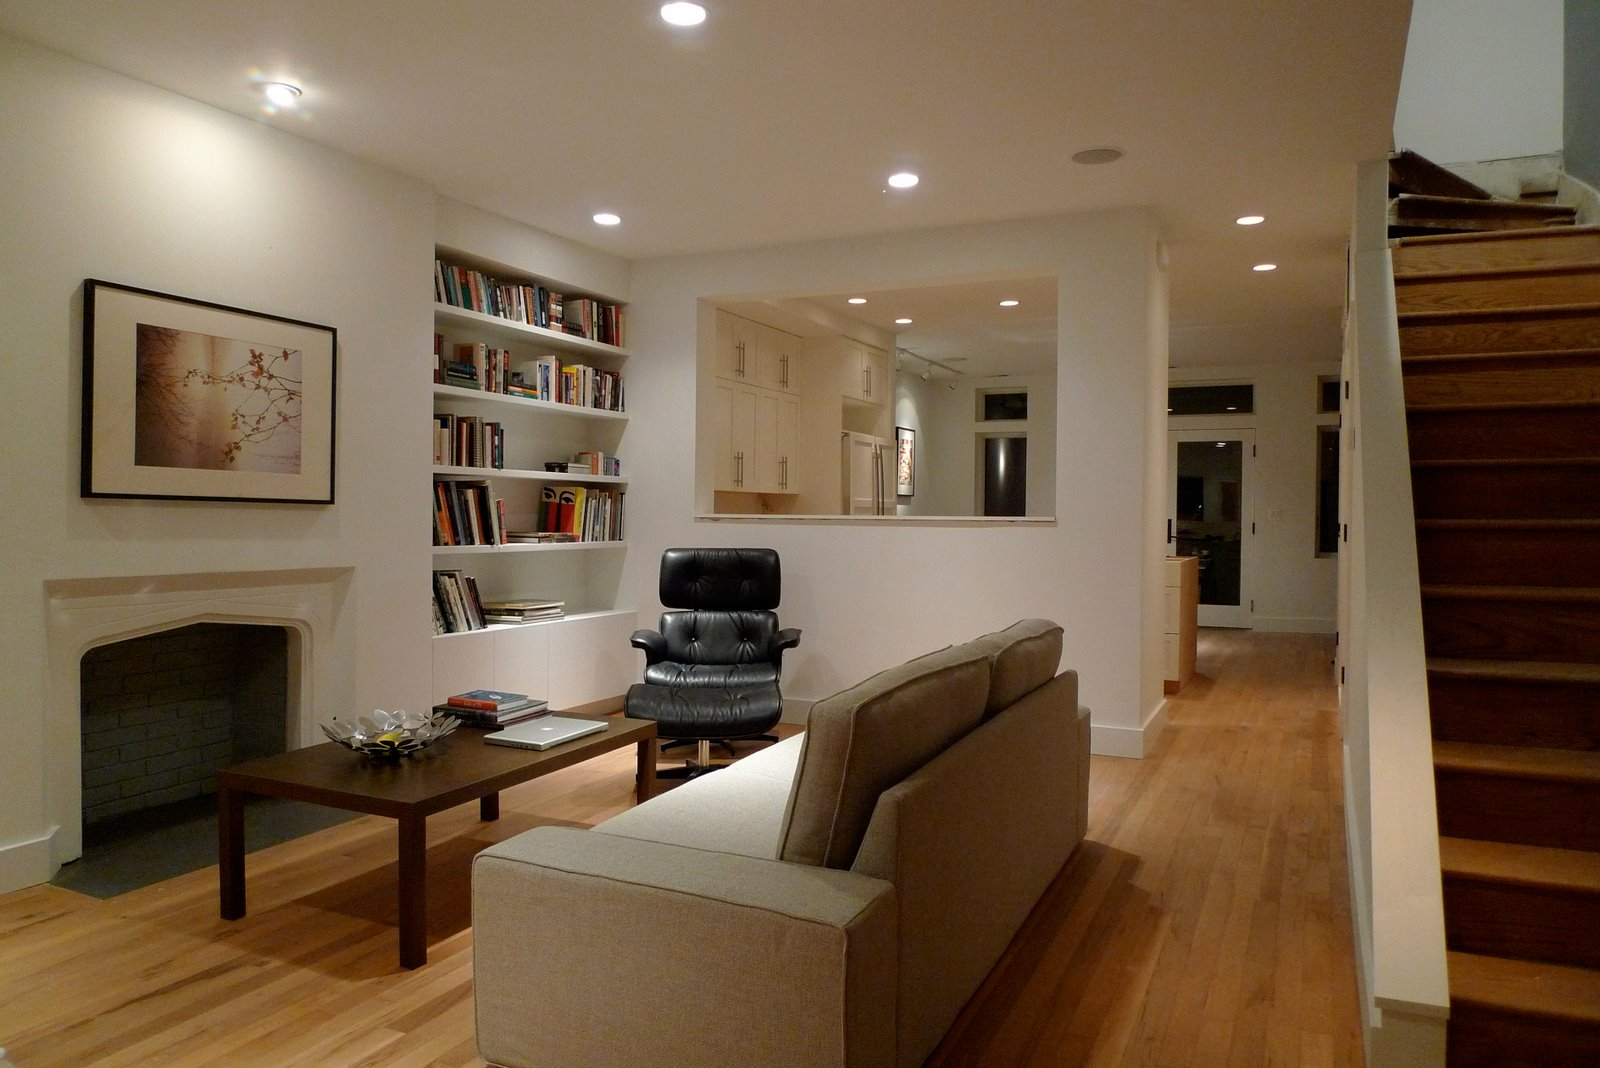 Dc row house renovation by kristian hoffland at for Home renovation design